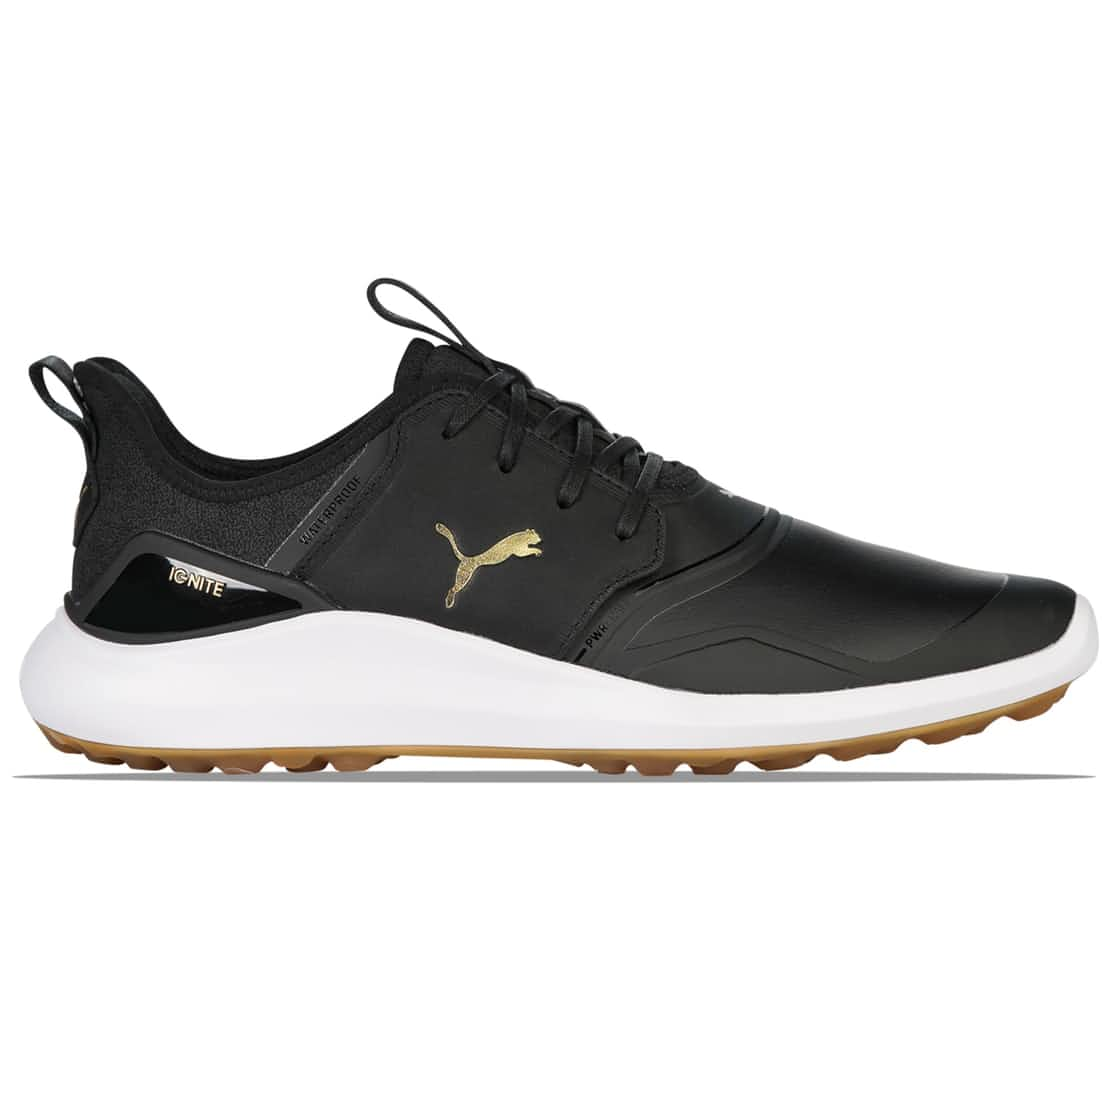 Ignite NXT Crafted Black/Black/Team Gold - AW20